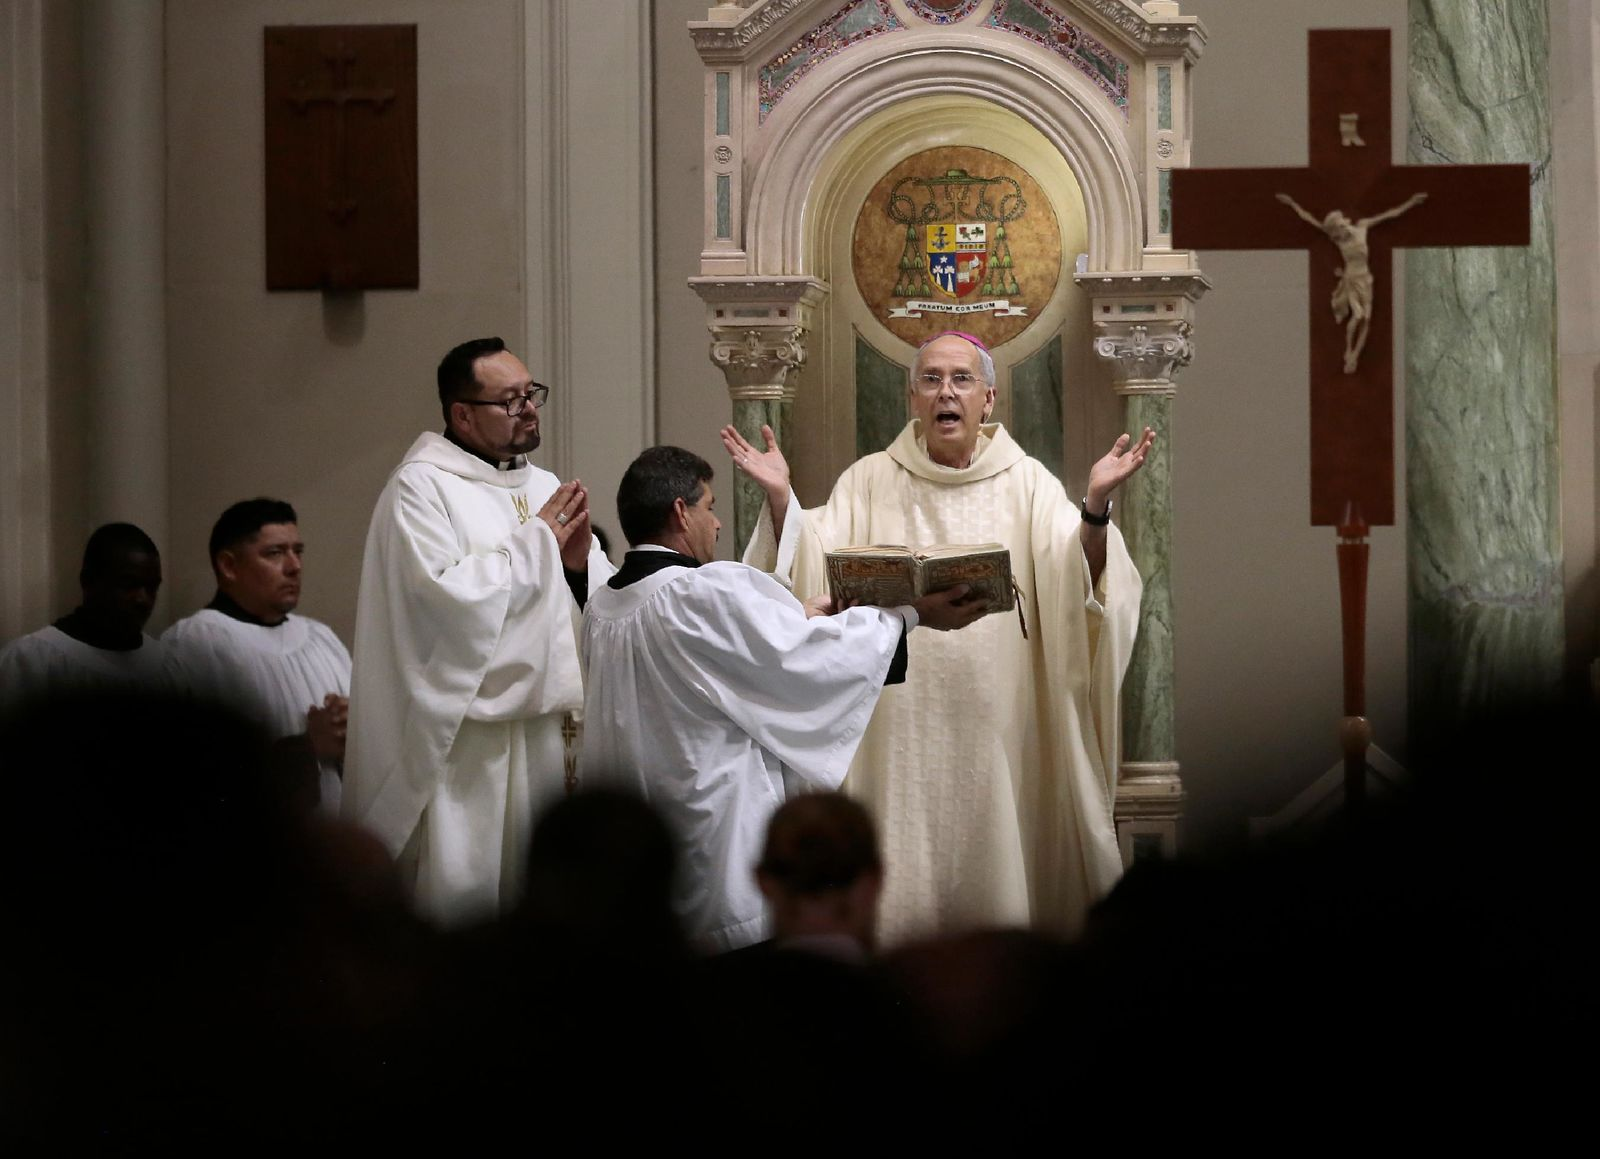 Bishop Mark Seitz presides over the funeral of Andres Anchondo Friday, Aug, 16, 2019 in El Paso, Texas. Anchondo who was one of the 22 killed in the mass shooting at Walmart on August 3. (Mark Lambie/The El Paso Times via AP)